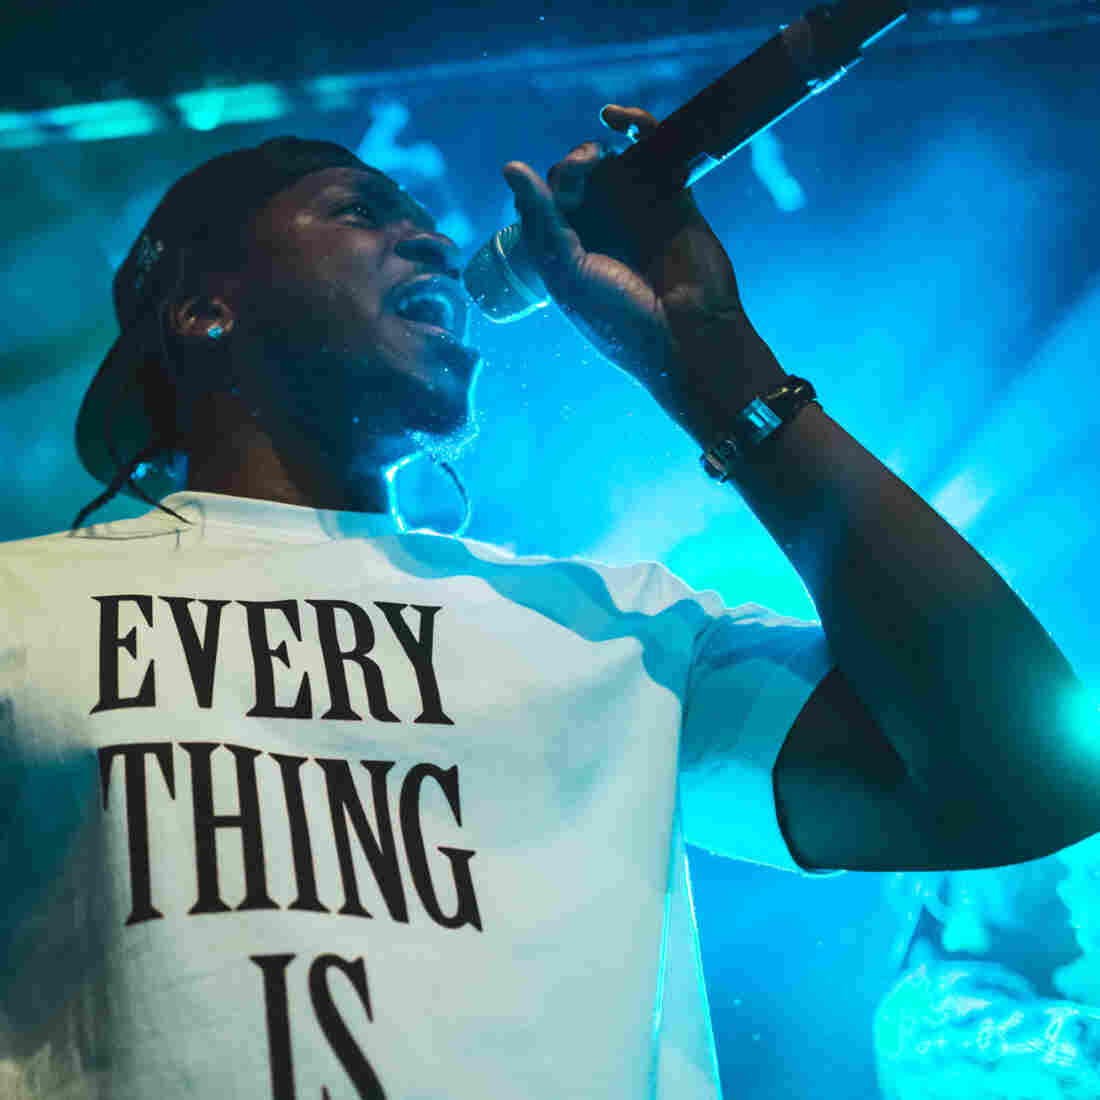 Pusha T performs live at NPR Music's showcase at Le Poisson Rouge in New York City on Wednesday, Oct. 16.